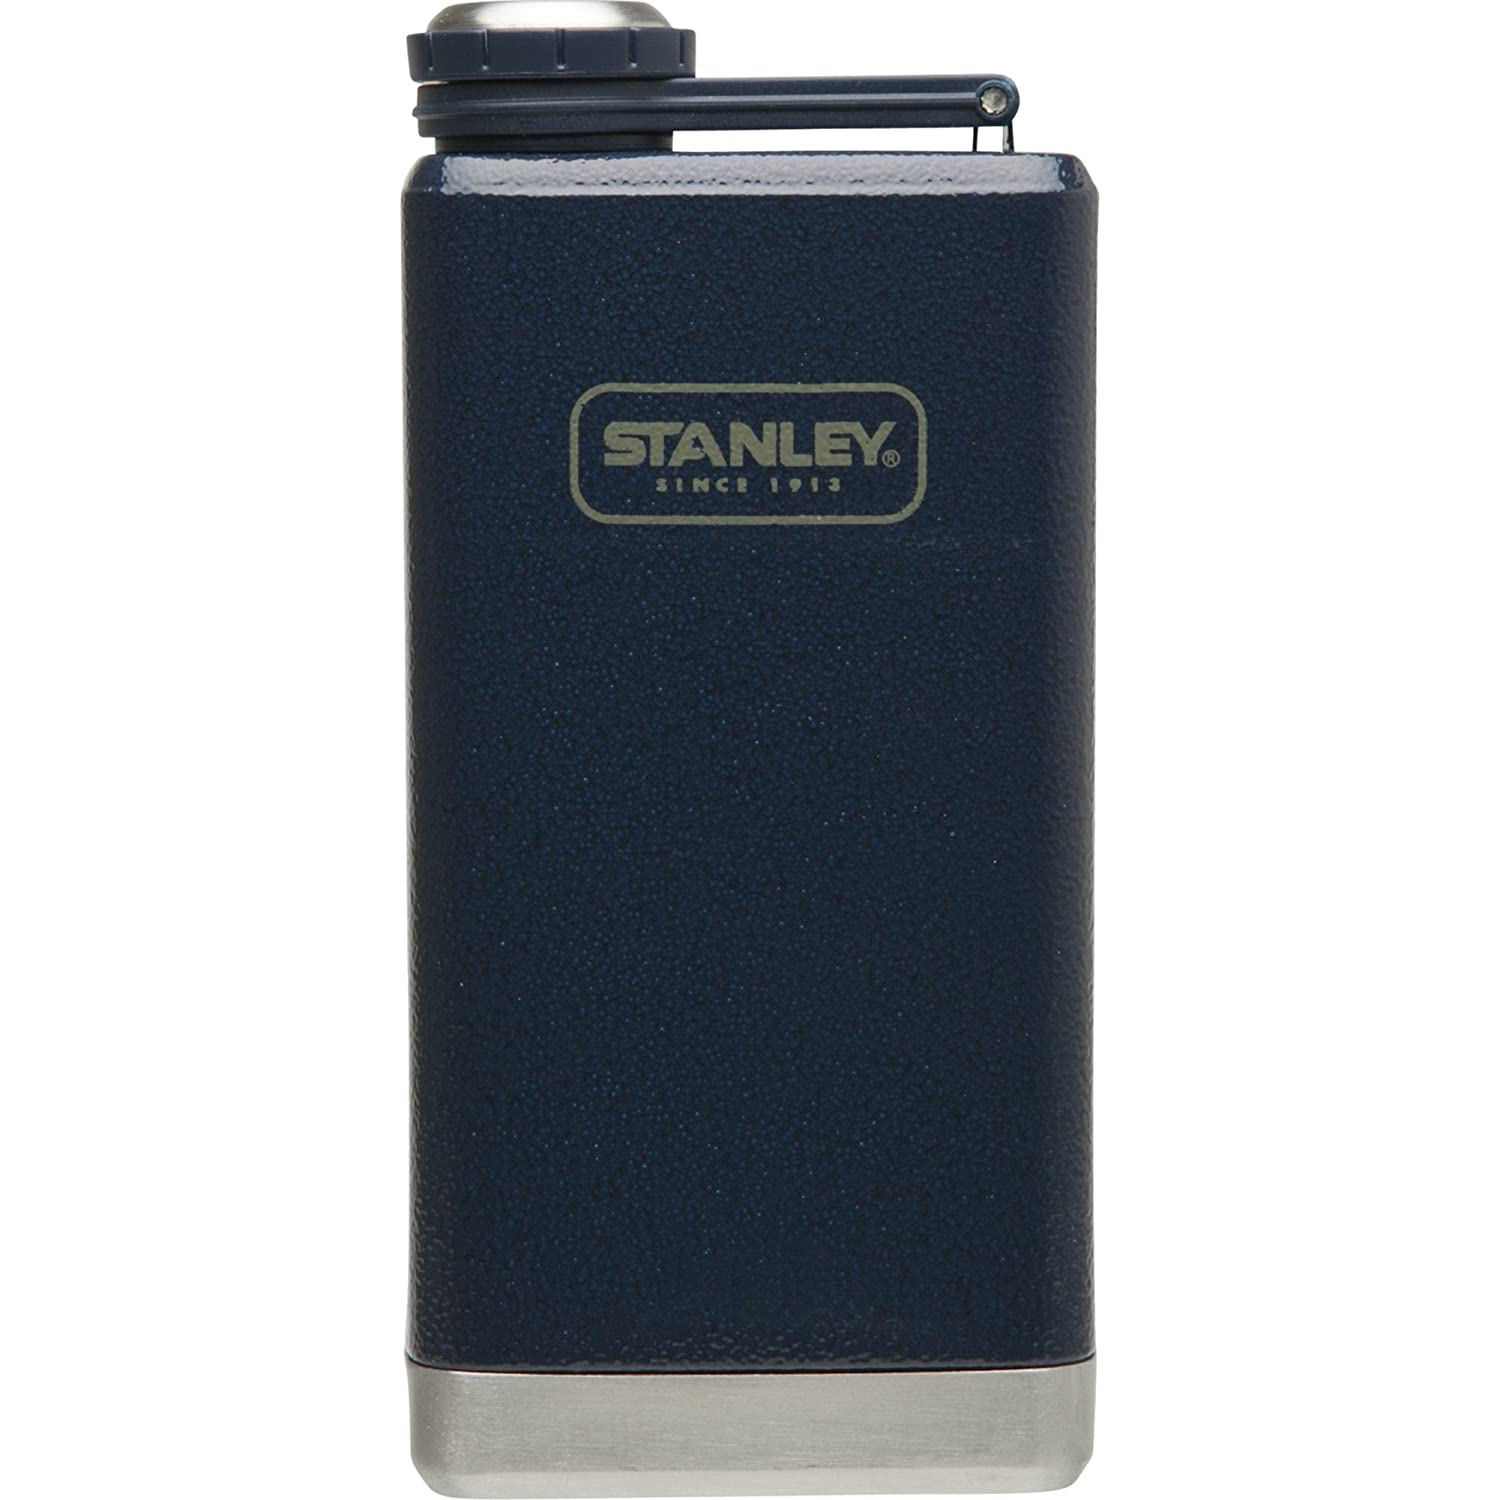 Amazon.com : Stanley Adventure Stainless Steel Flask : Sports ...